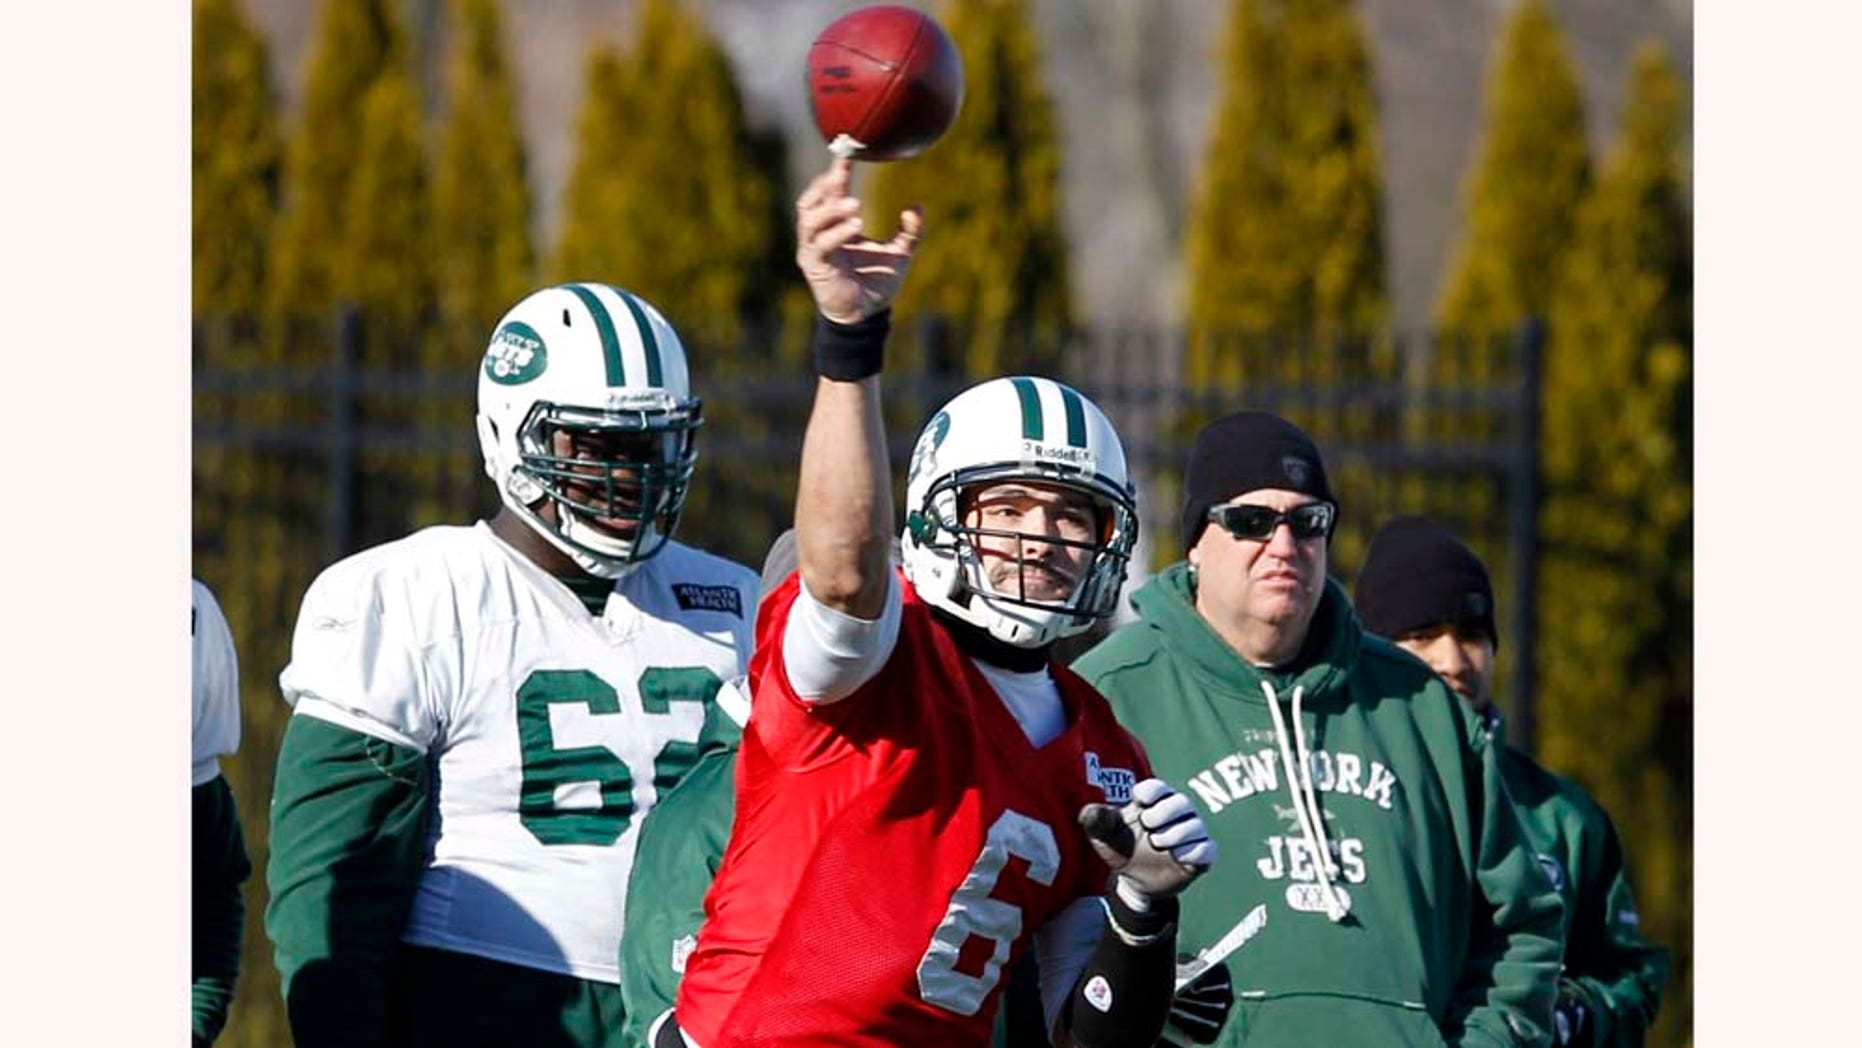 As New York Jets head coach Rex Ryan, right, and lineman Vladimir Ducasse, left,  look on, quarterback Mark Sanchez throws a pass during practice Friday, Jan. 14, 2011, in Florham Park, N.J. The Jets play the New England Patriots in the AFC Divisional playoff game Sunday. (AP Photo/Mel Evans)